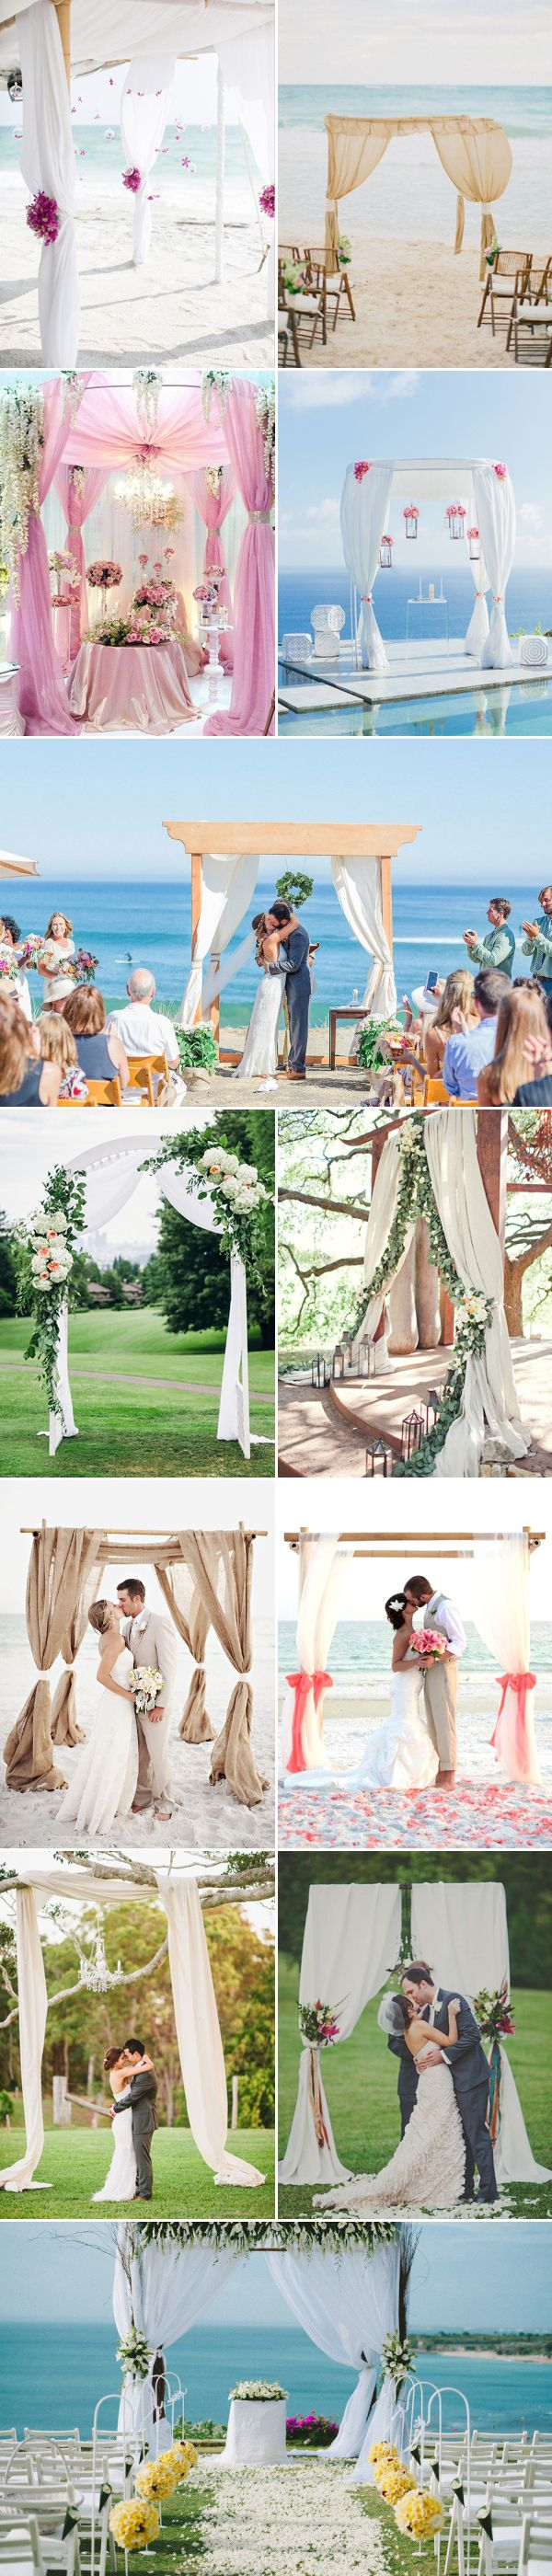 50 Beautiful Wedding Arch Decoration Ideas - Drape Decor